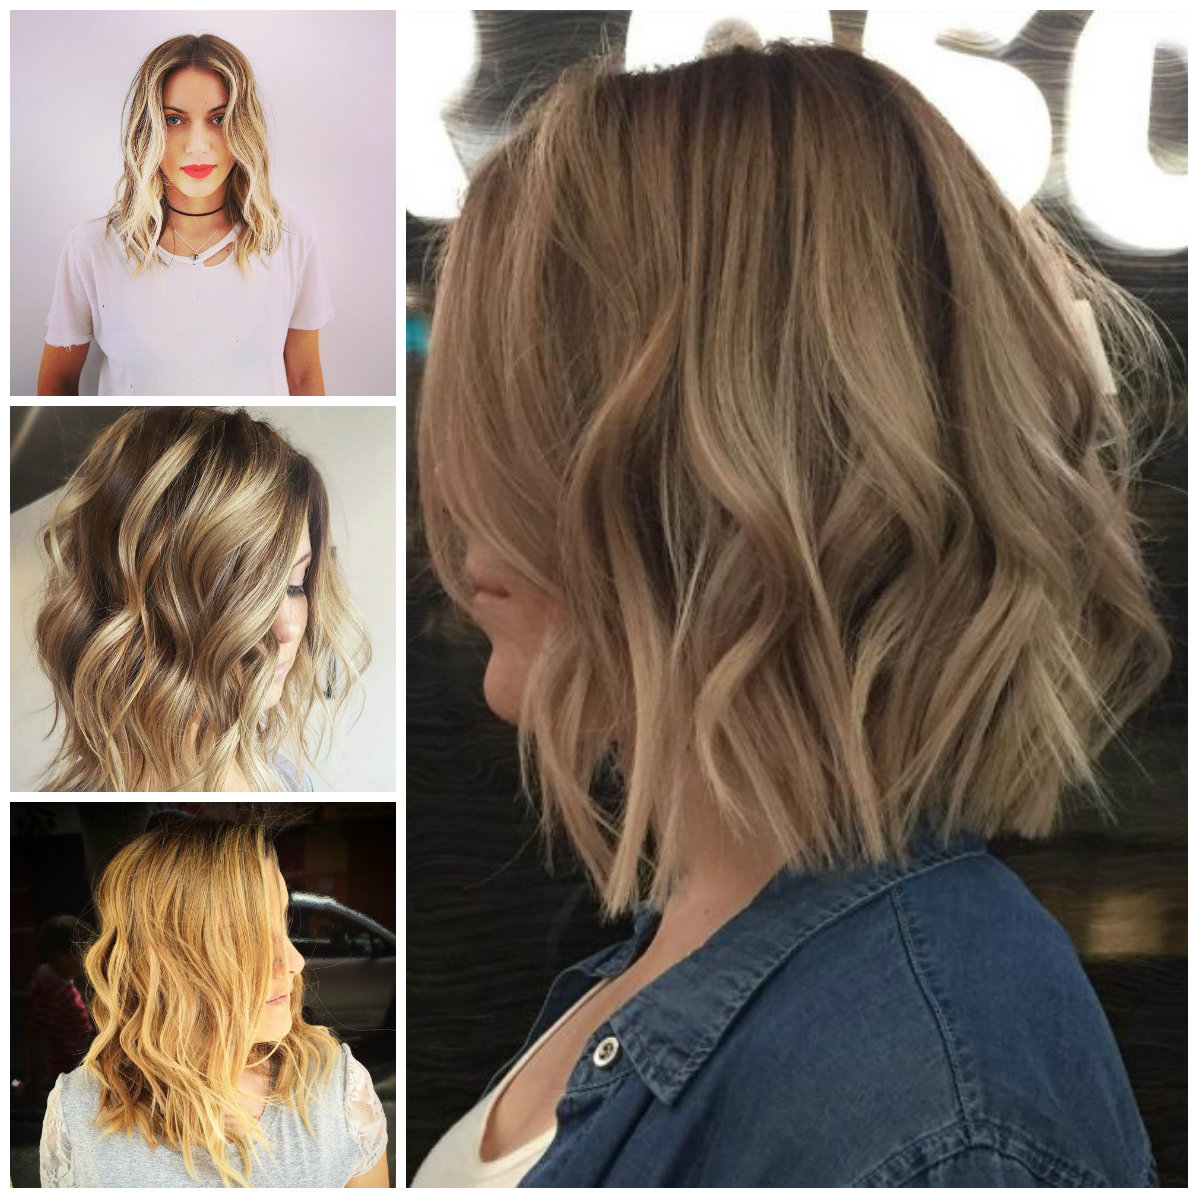 stylish short wavy hairstyles for 2017 | 2019 haircuts, hairstyles